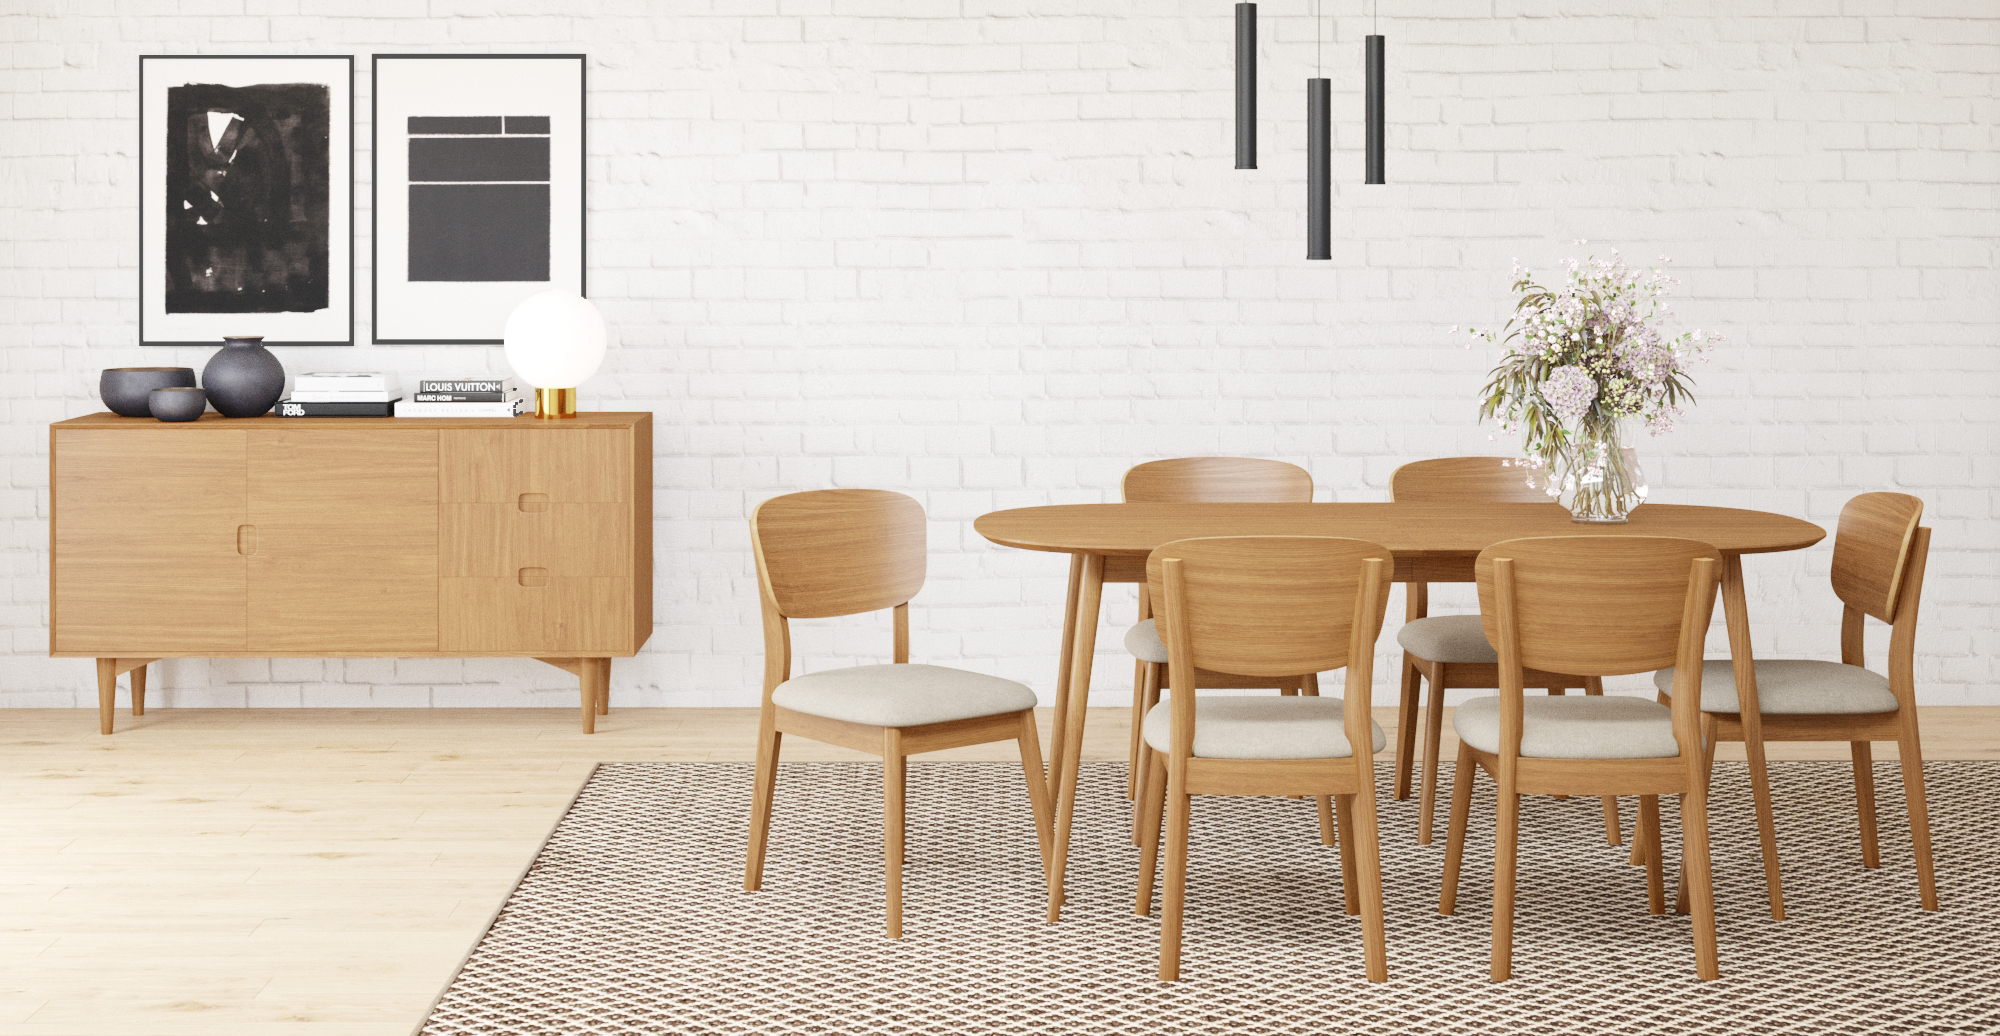 Brosa Mia Set of 2 Dining Chairs styled in Scandinavian dining room